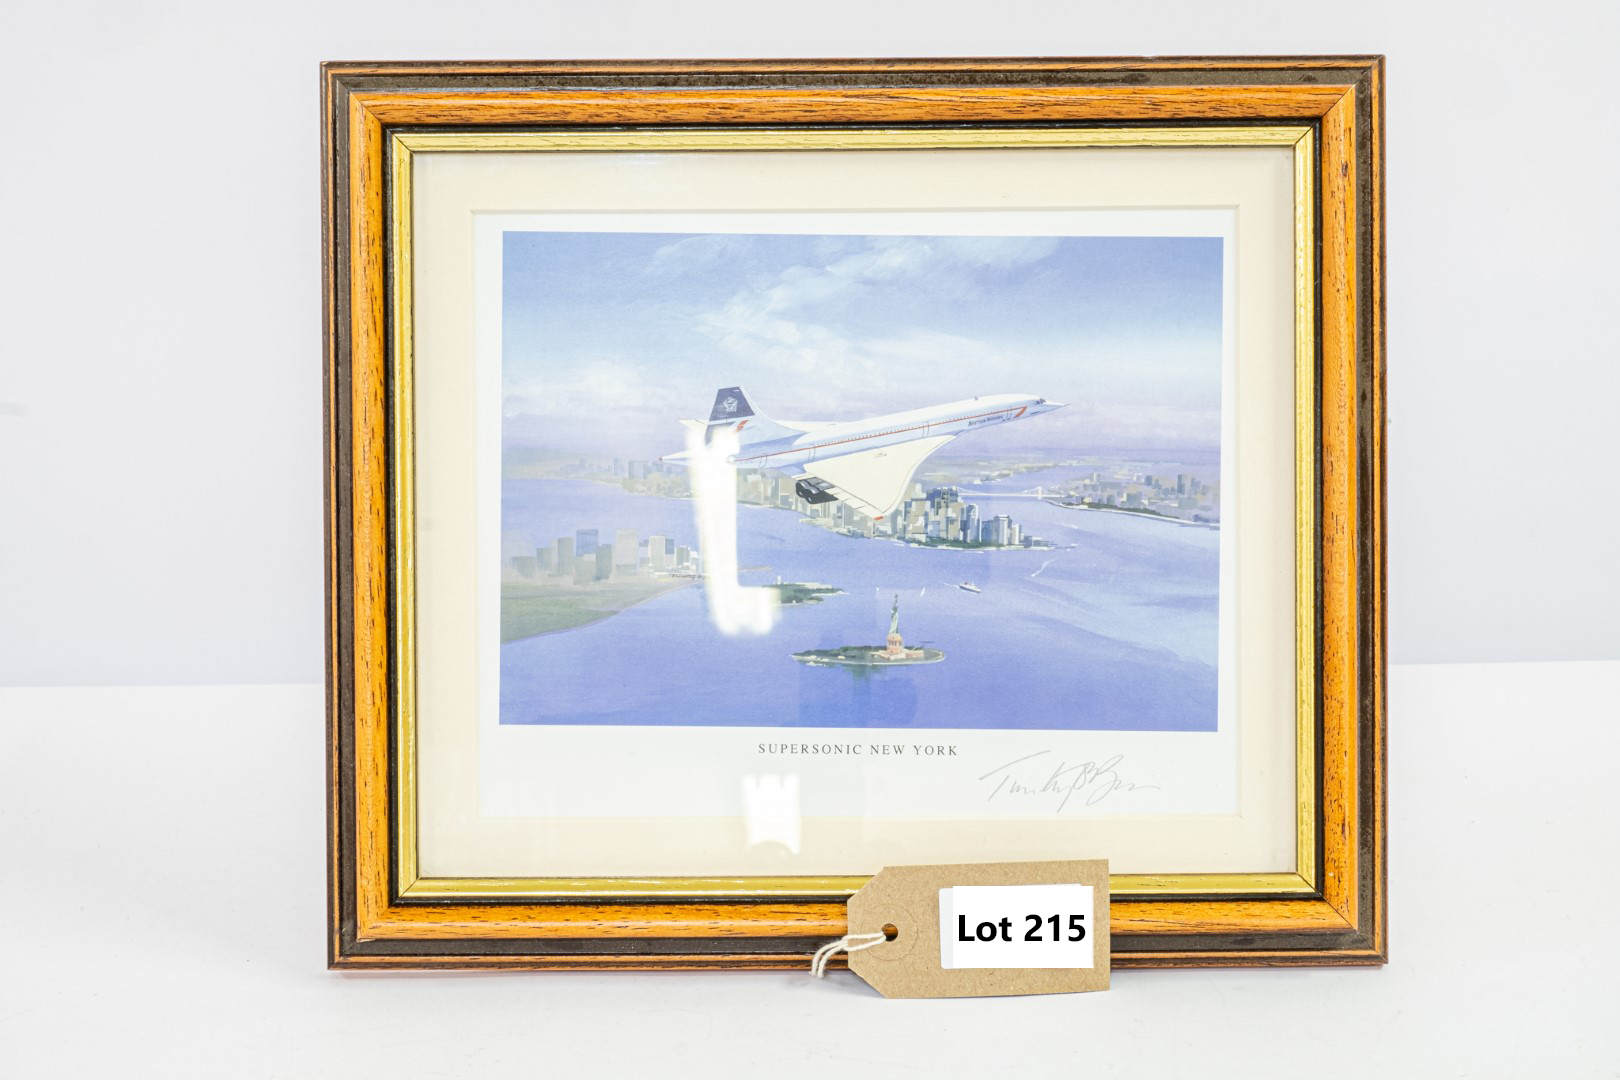 """Westminster Concorde Supersonic New York Limited Edition Framed Print - 11"""" x 9.5"""""""